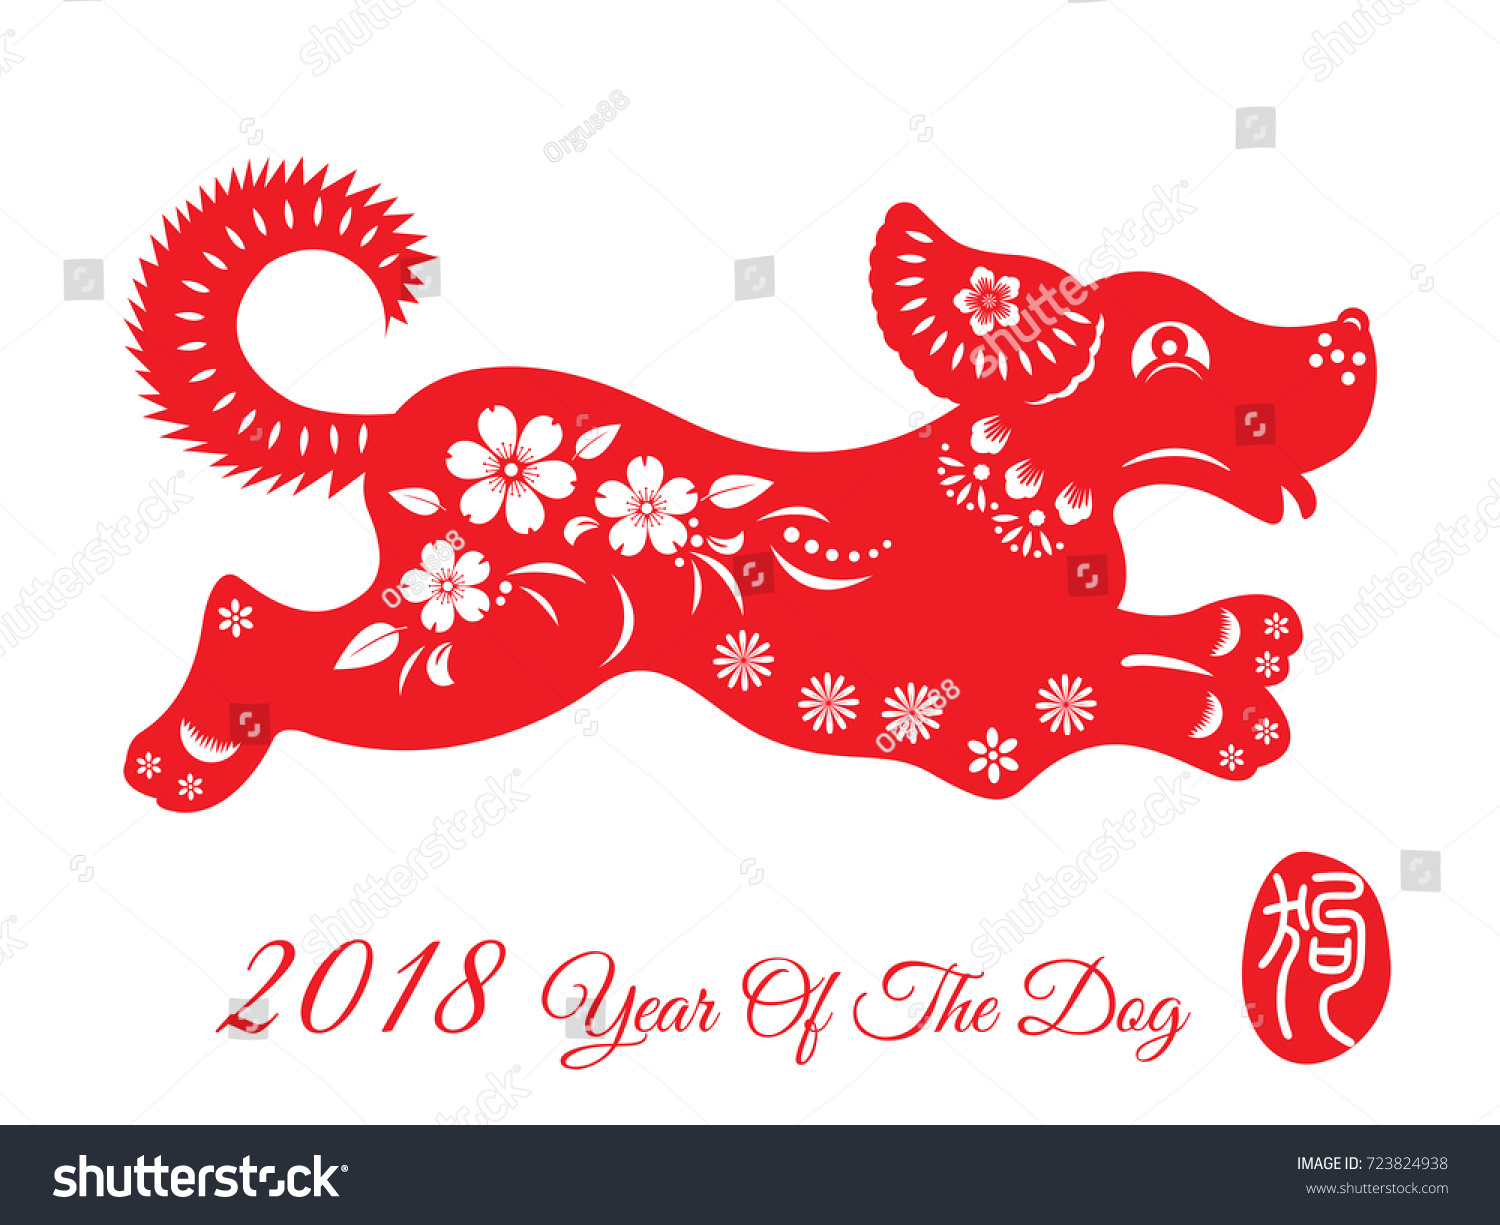 year dog chinese zodiac dog red stock vector 723824938 shutterstock. Black Bedroom Furniture Sets. Home Design Ideas